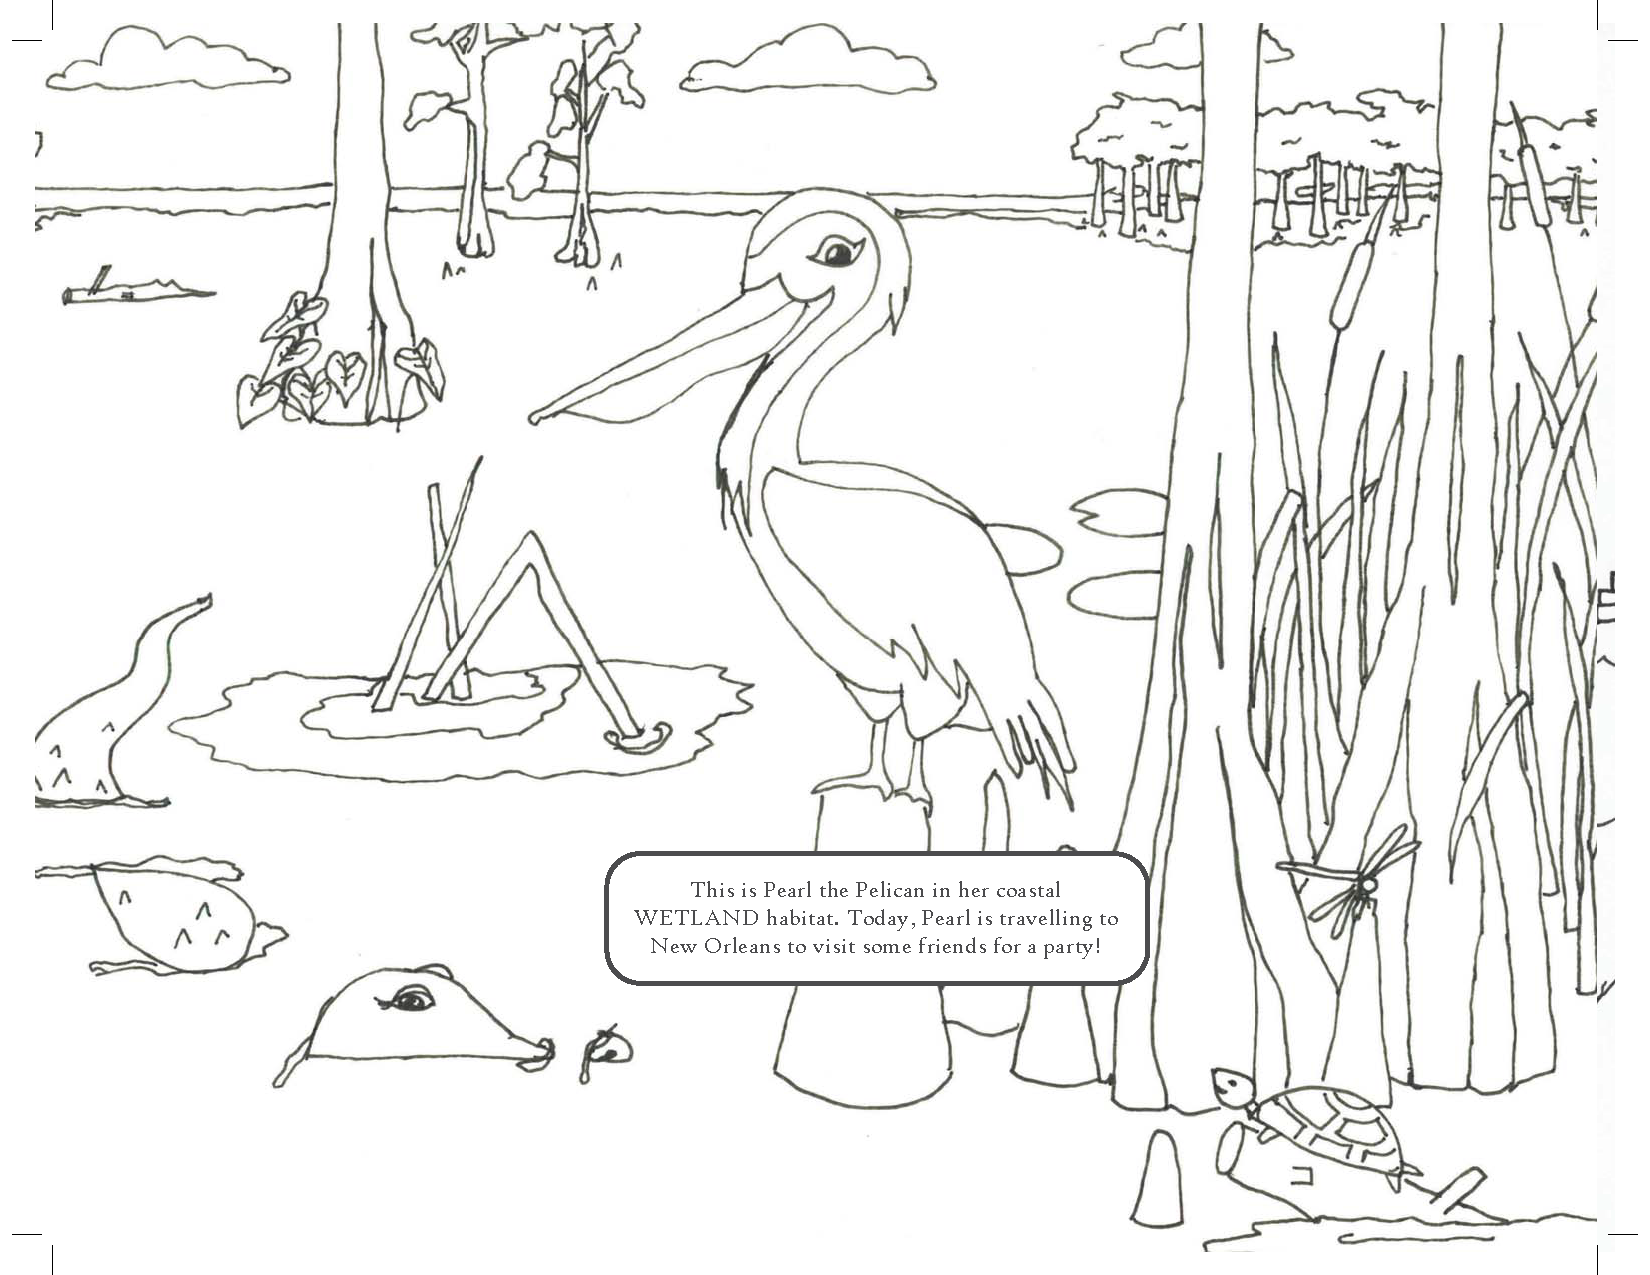 Page from water infrastructure in new orleans a coloring book illustrated by amelia broussard